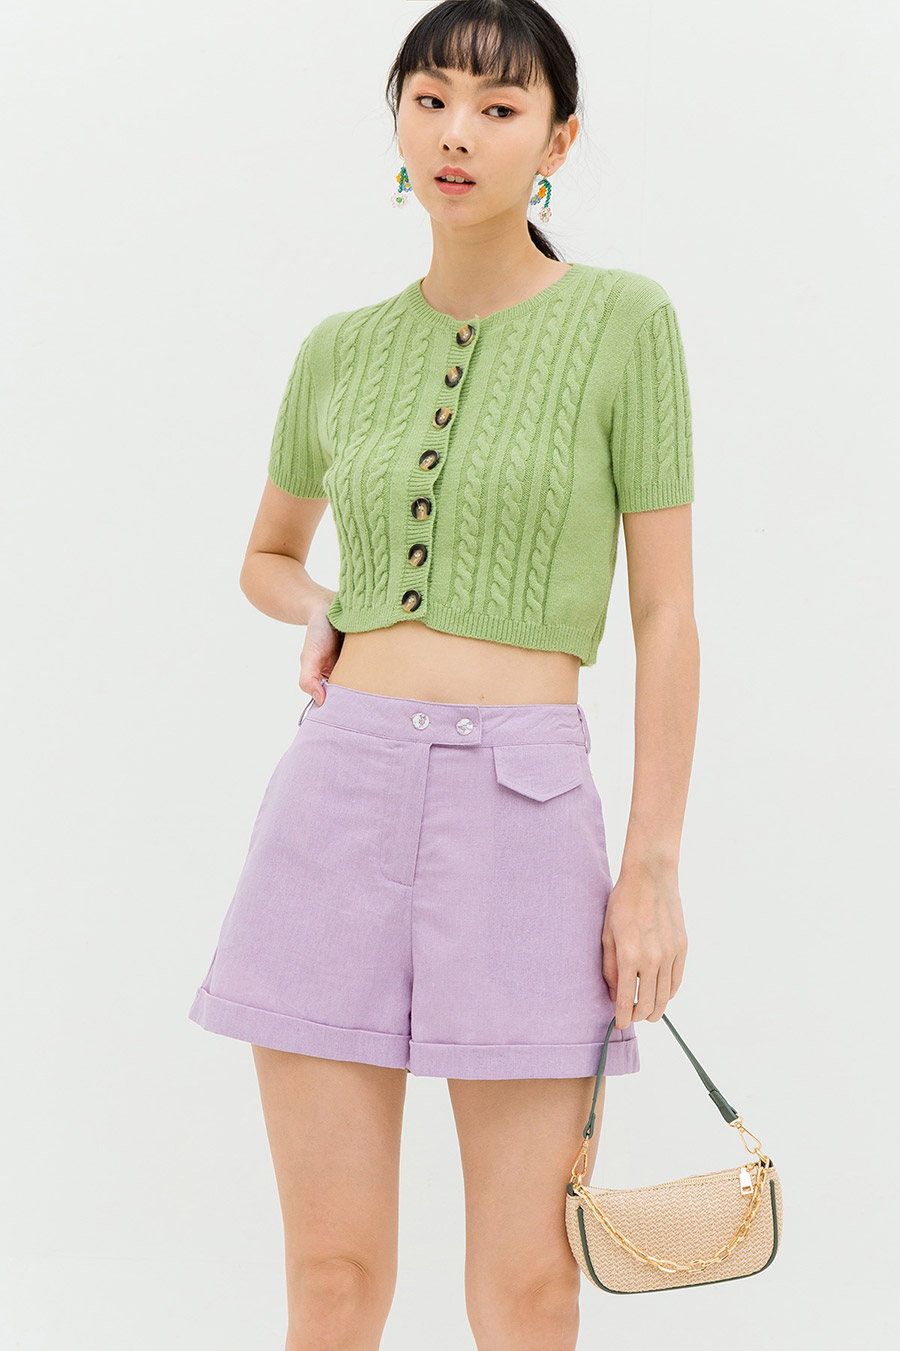 *RESTOCKED* FULTON SHORTS - LAVENDER [BY MODPARADE]